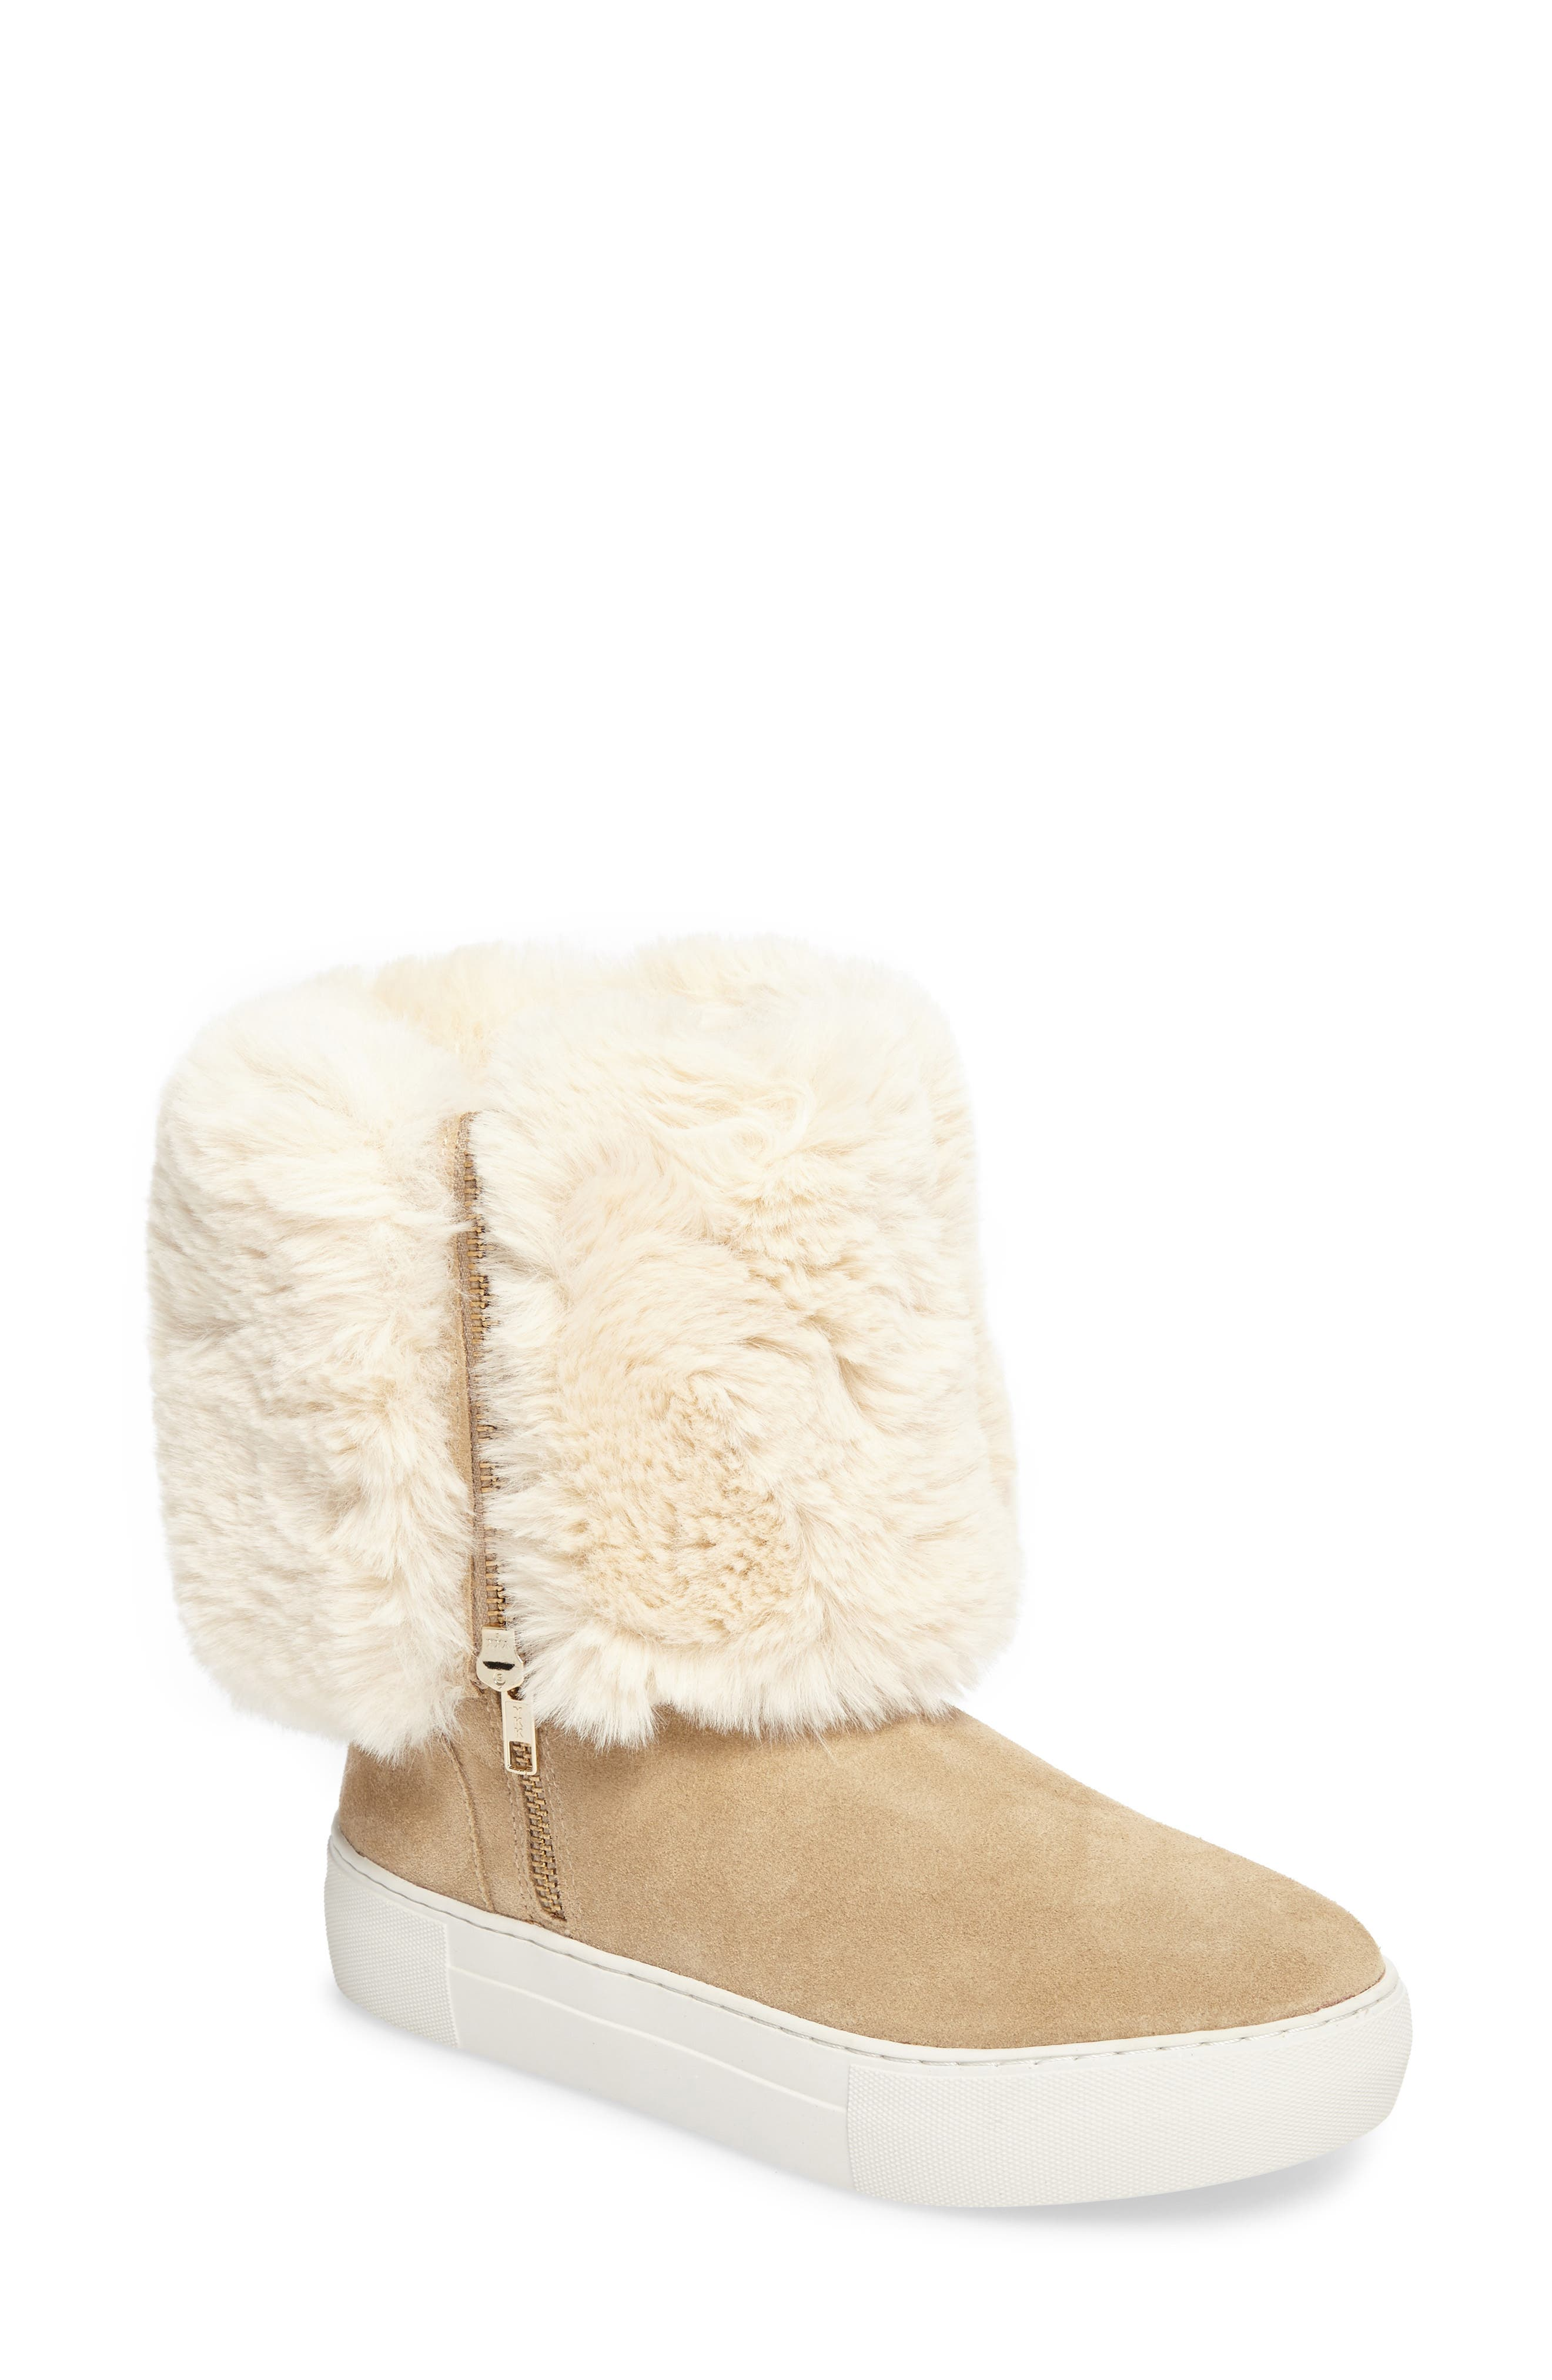 Jslides Apple Faux Shearling Boot, Beige